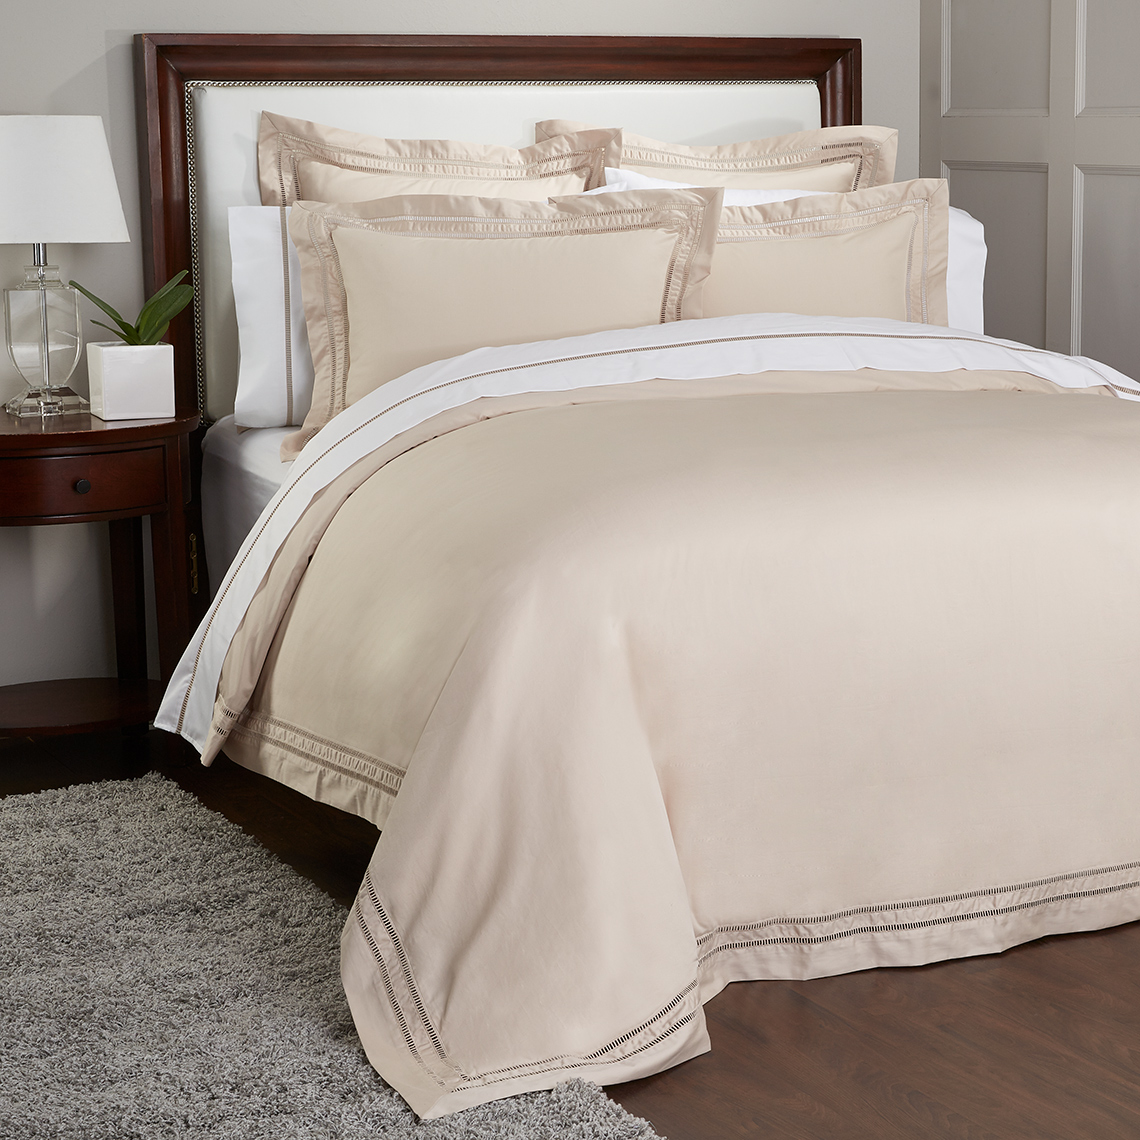 lux_beige_bed